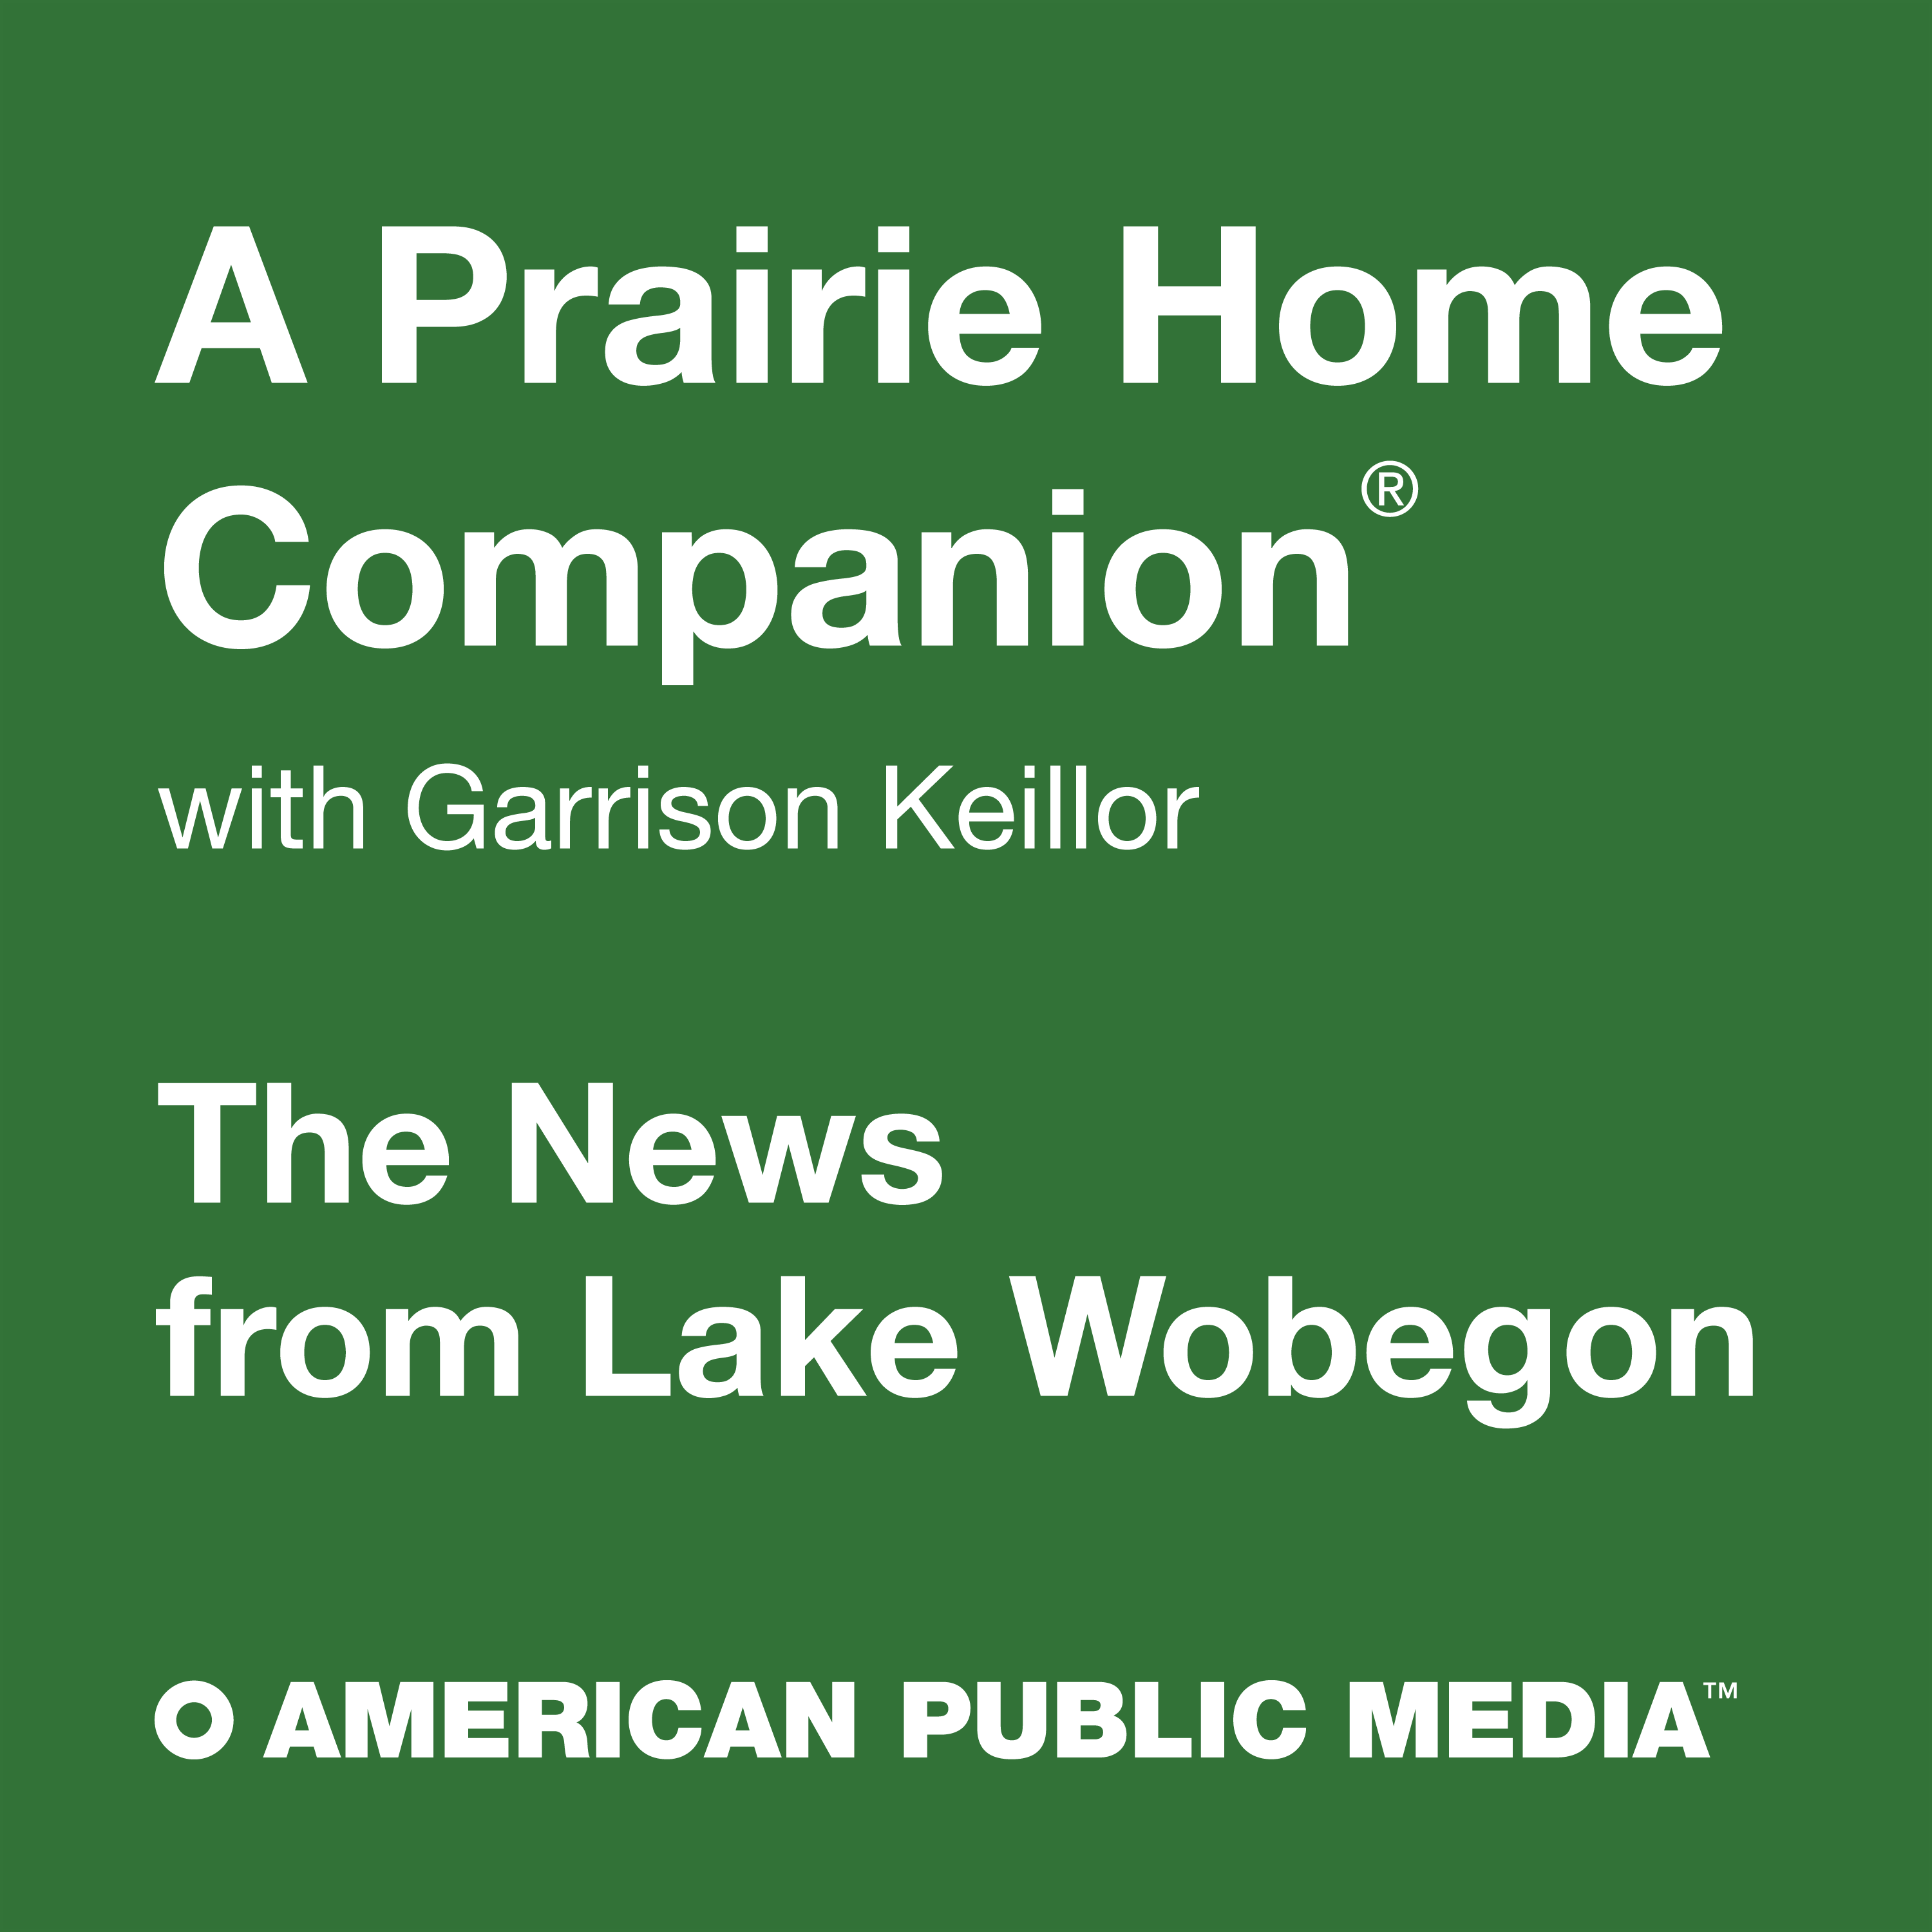 A Prairie Home Companion: News from Lake Wobegon by American Public Media  on Apple Podcasts